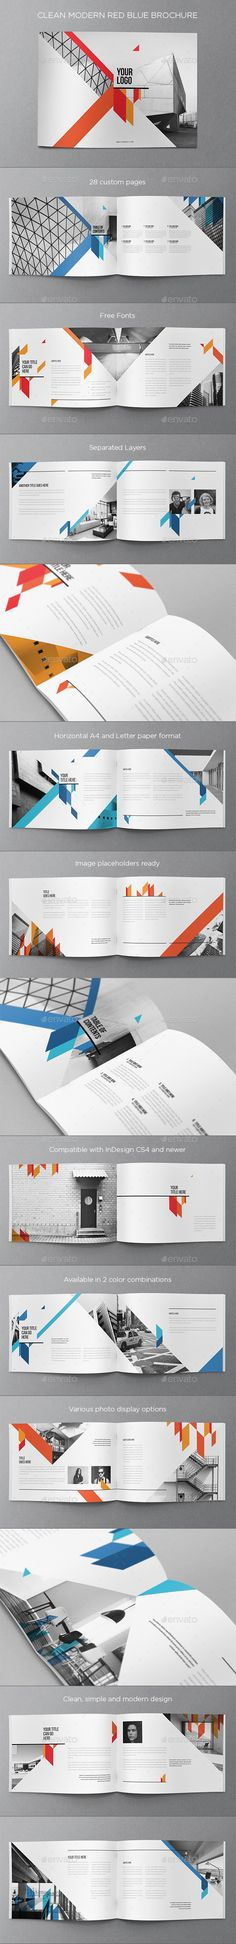 Clean Modern Red Blue Brochure Template #design Download: http://graphicriver.net/item/clean-modern-red-blue-brochure/10410539?ref=ksioks